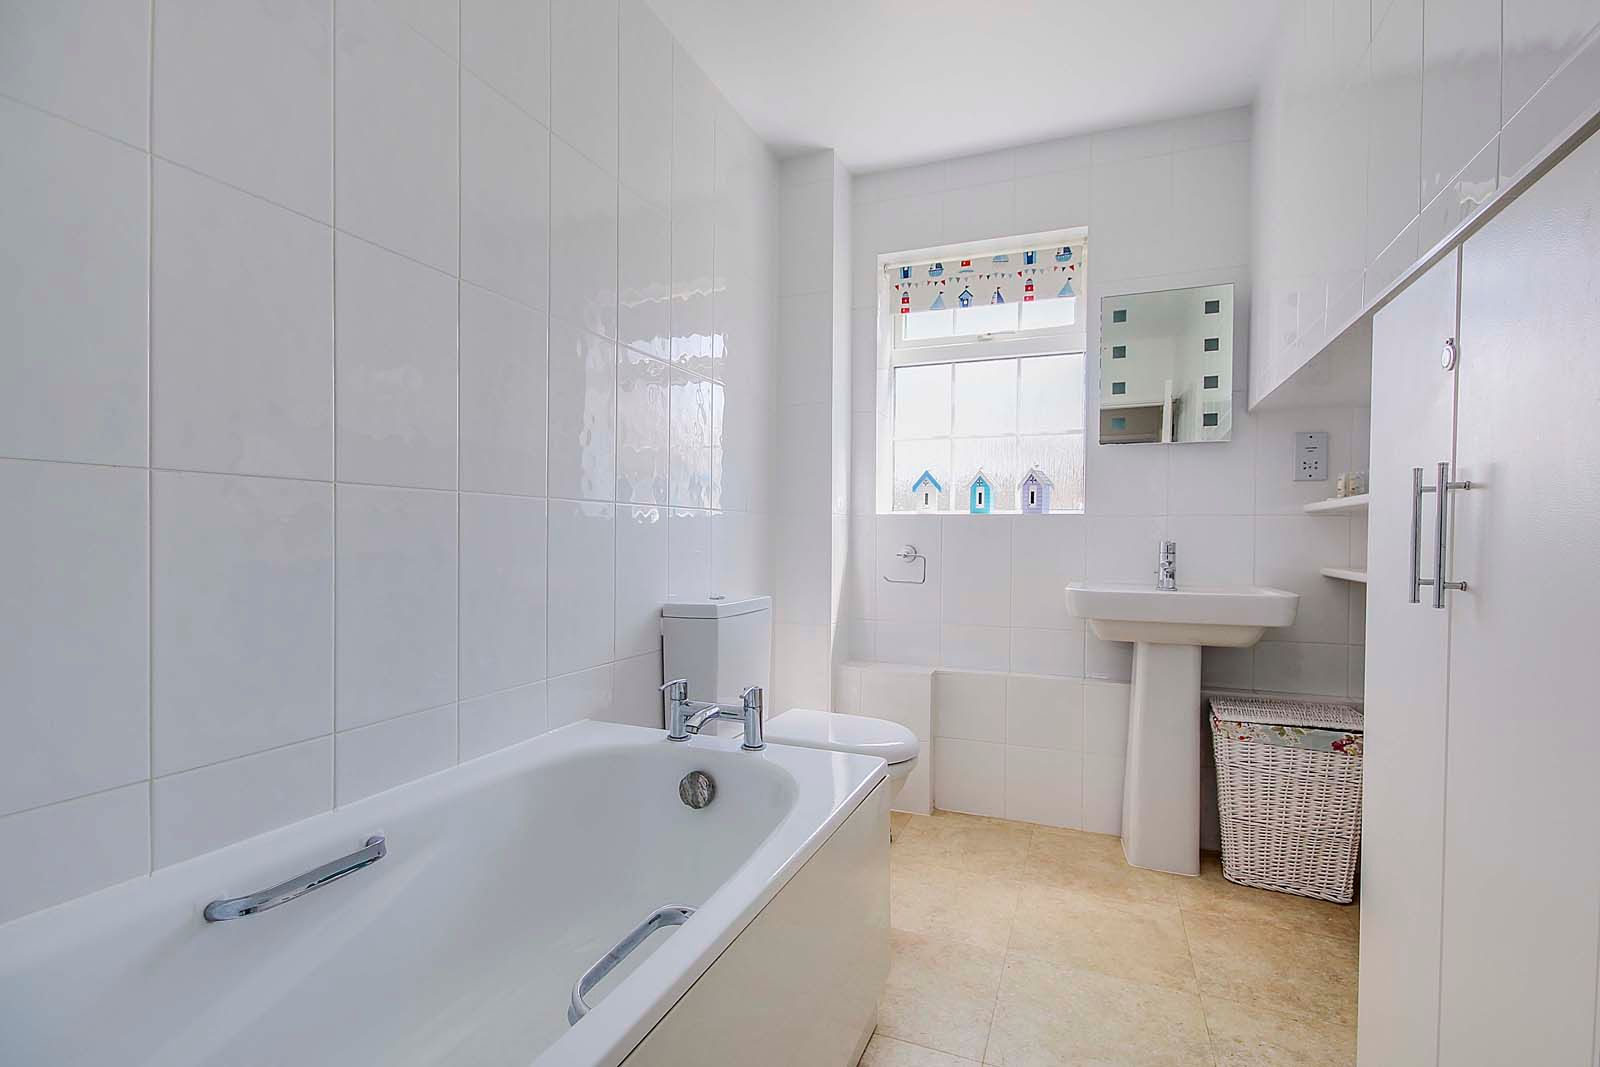 2 bed  for sale in Ferring Marine  - Property Image 5